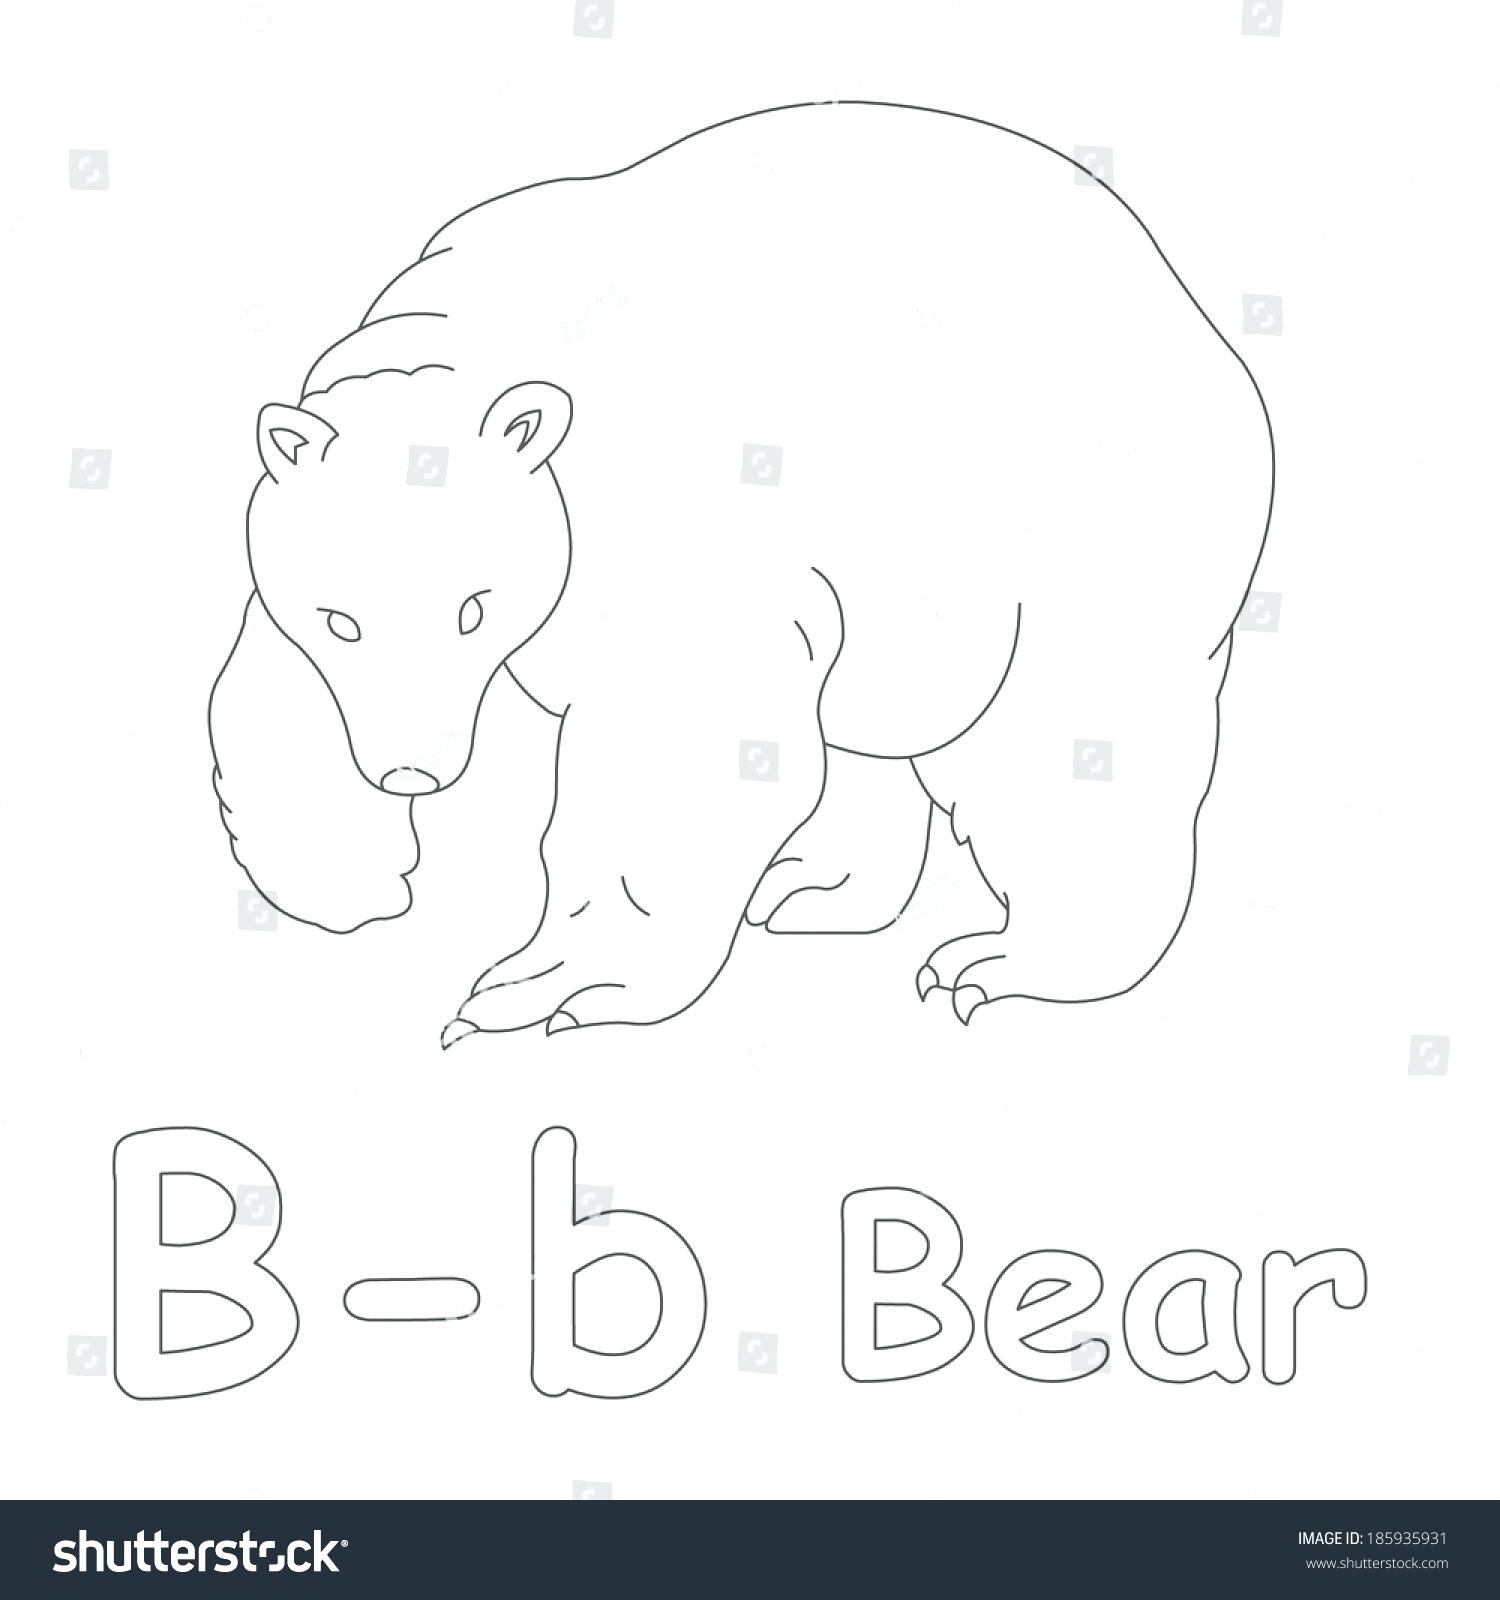 Yogi Bear Coloring Page B Is For Bear Coloring Page Printable B Coloring Pages For